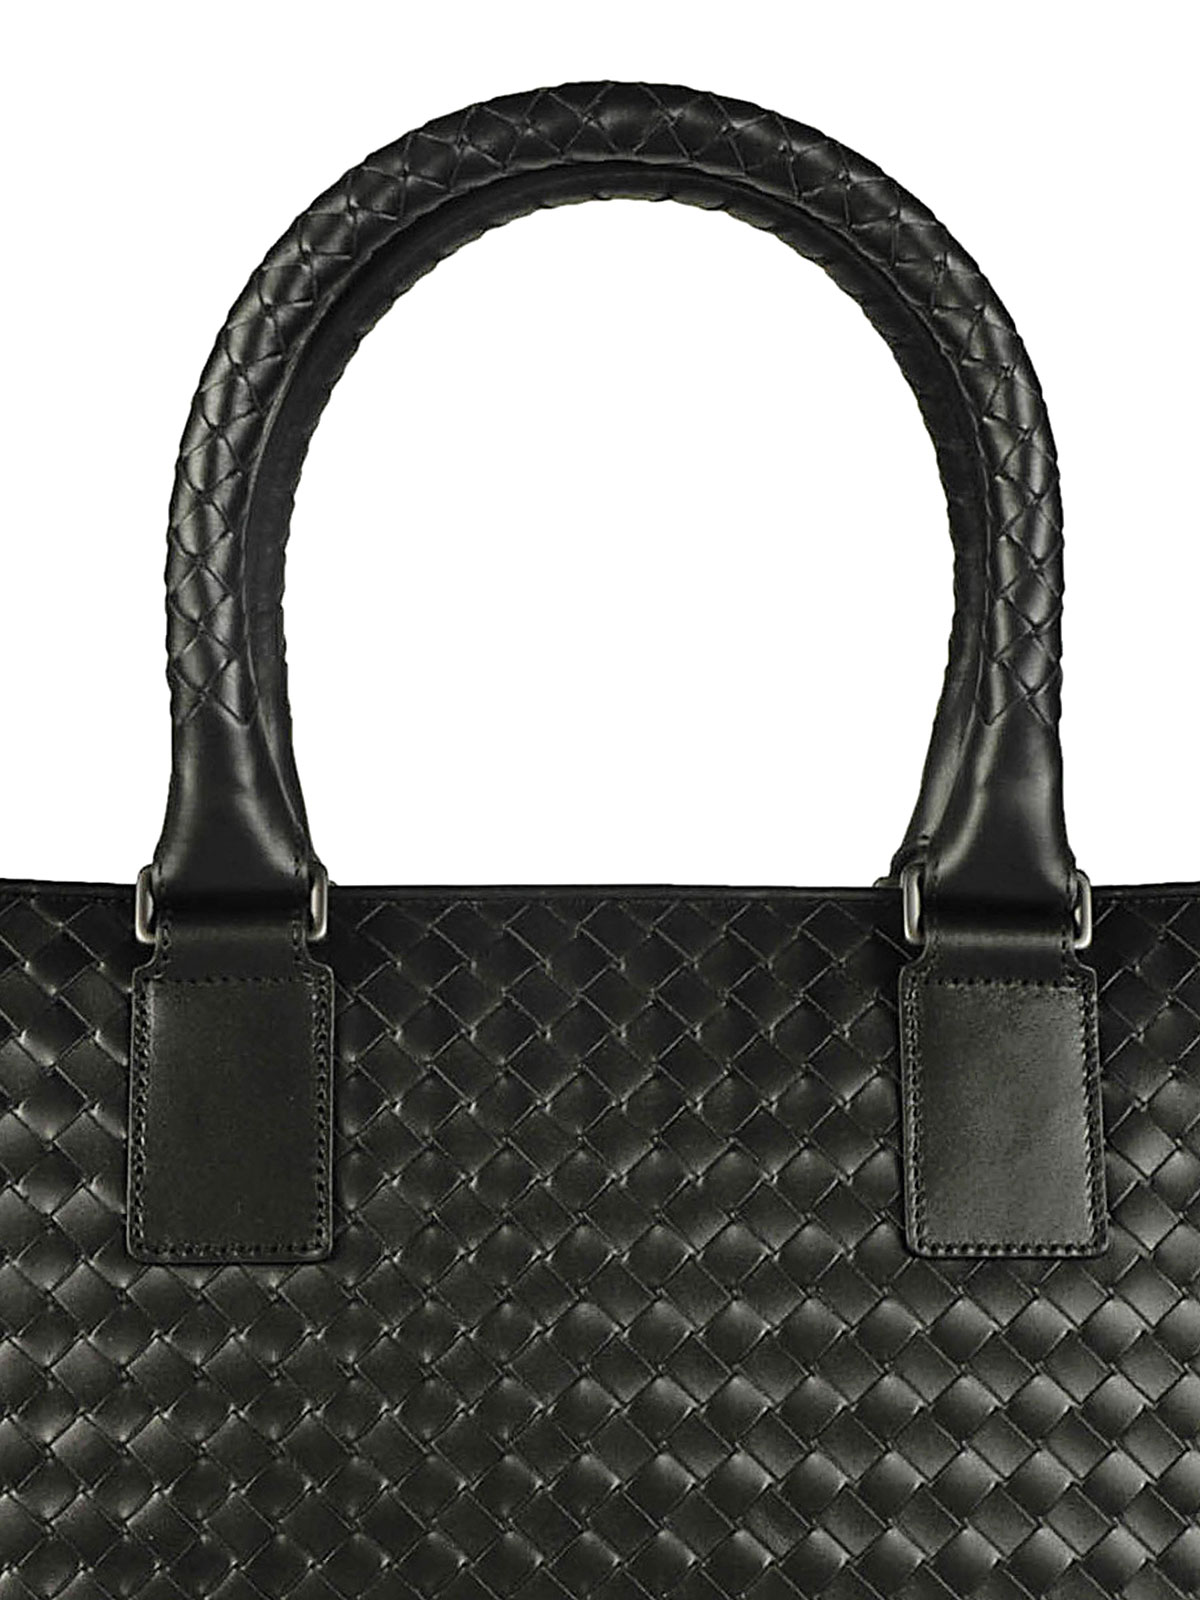 a3b3f9ff82 Bottega Veneta - LEATHER DOCUMENT BRIEFCASE - laptop bags ...